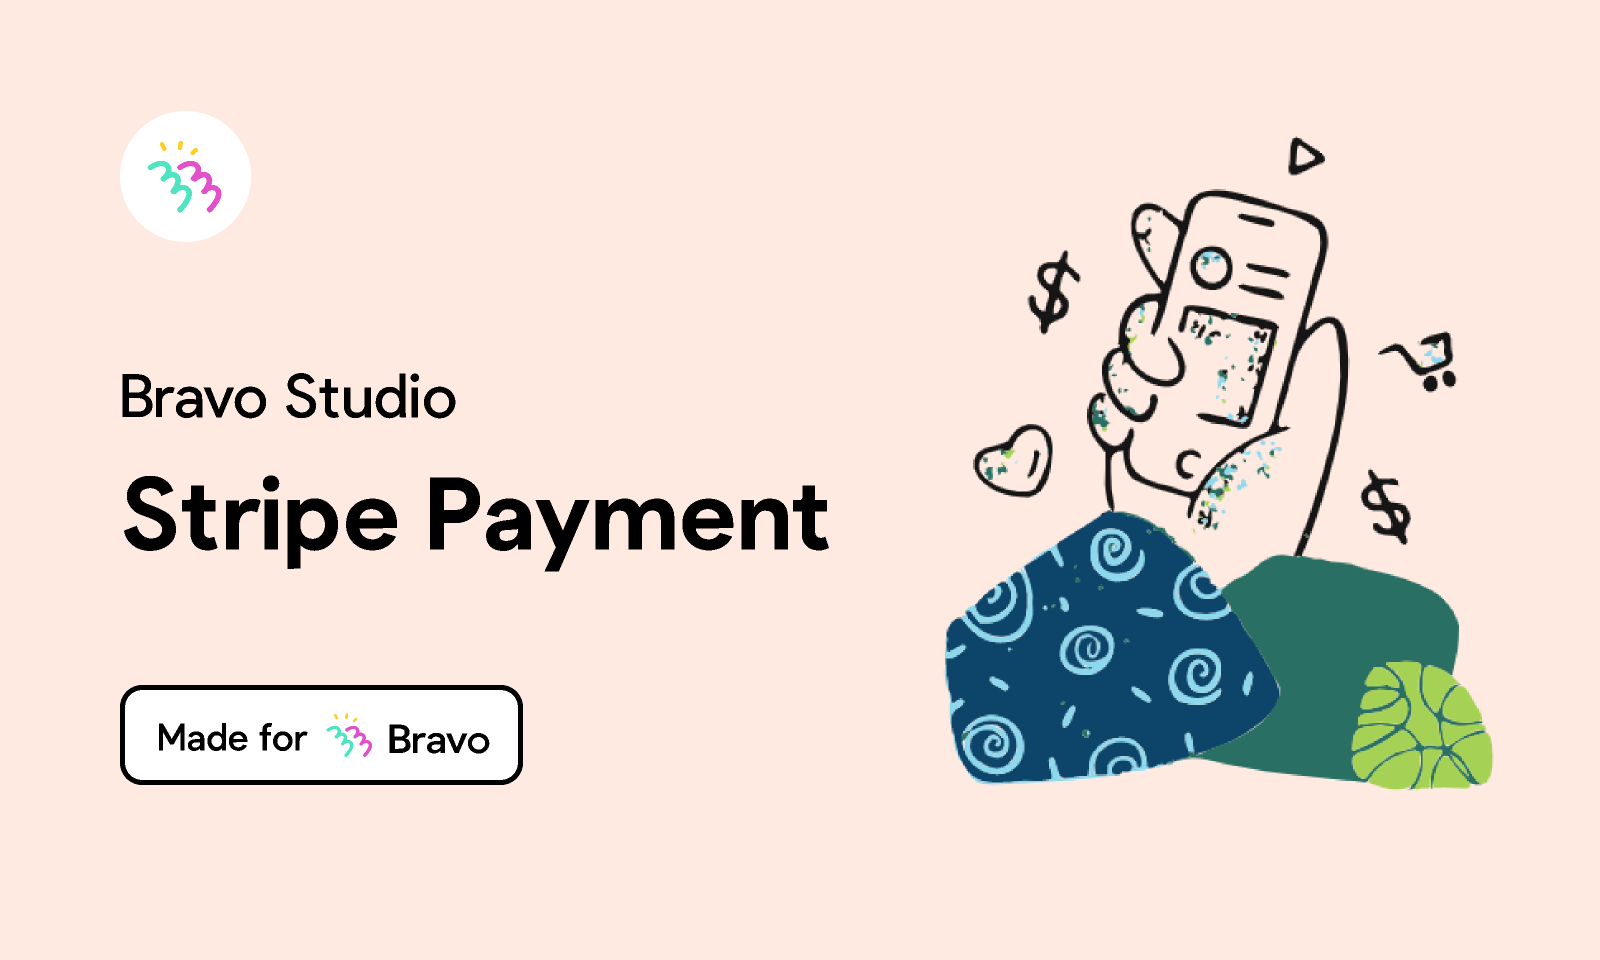 Figma - Bravo Sample: Stripe Payment   Made for Bravo Studio. Add one-time card payments integrated with Stripe in your Bravo app with t...